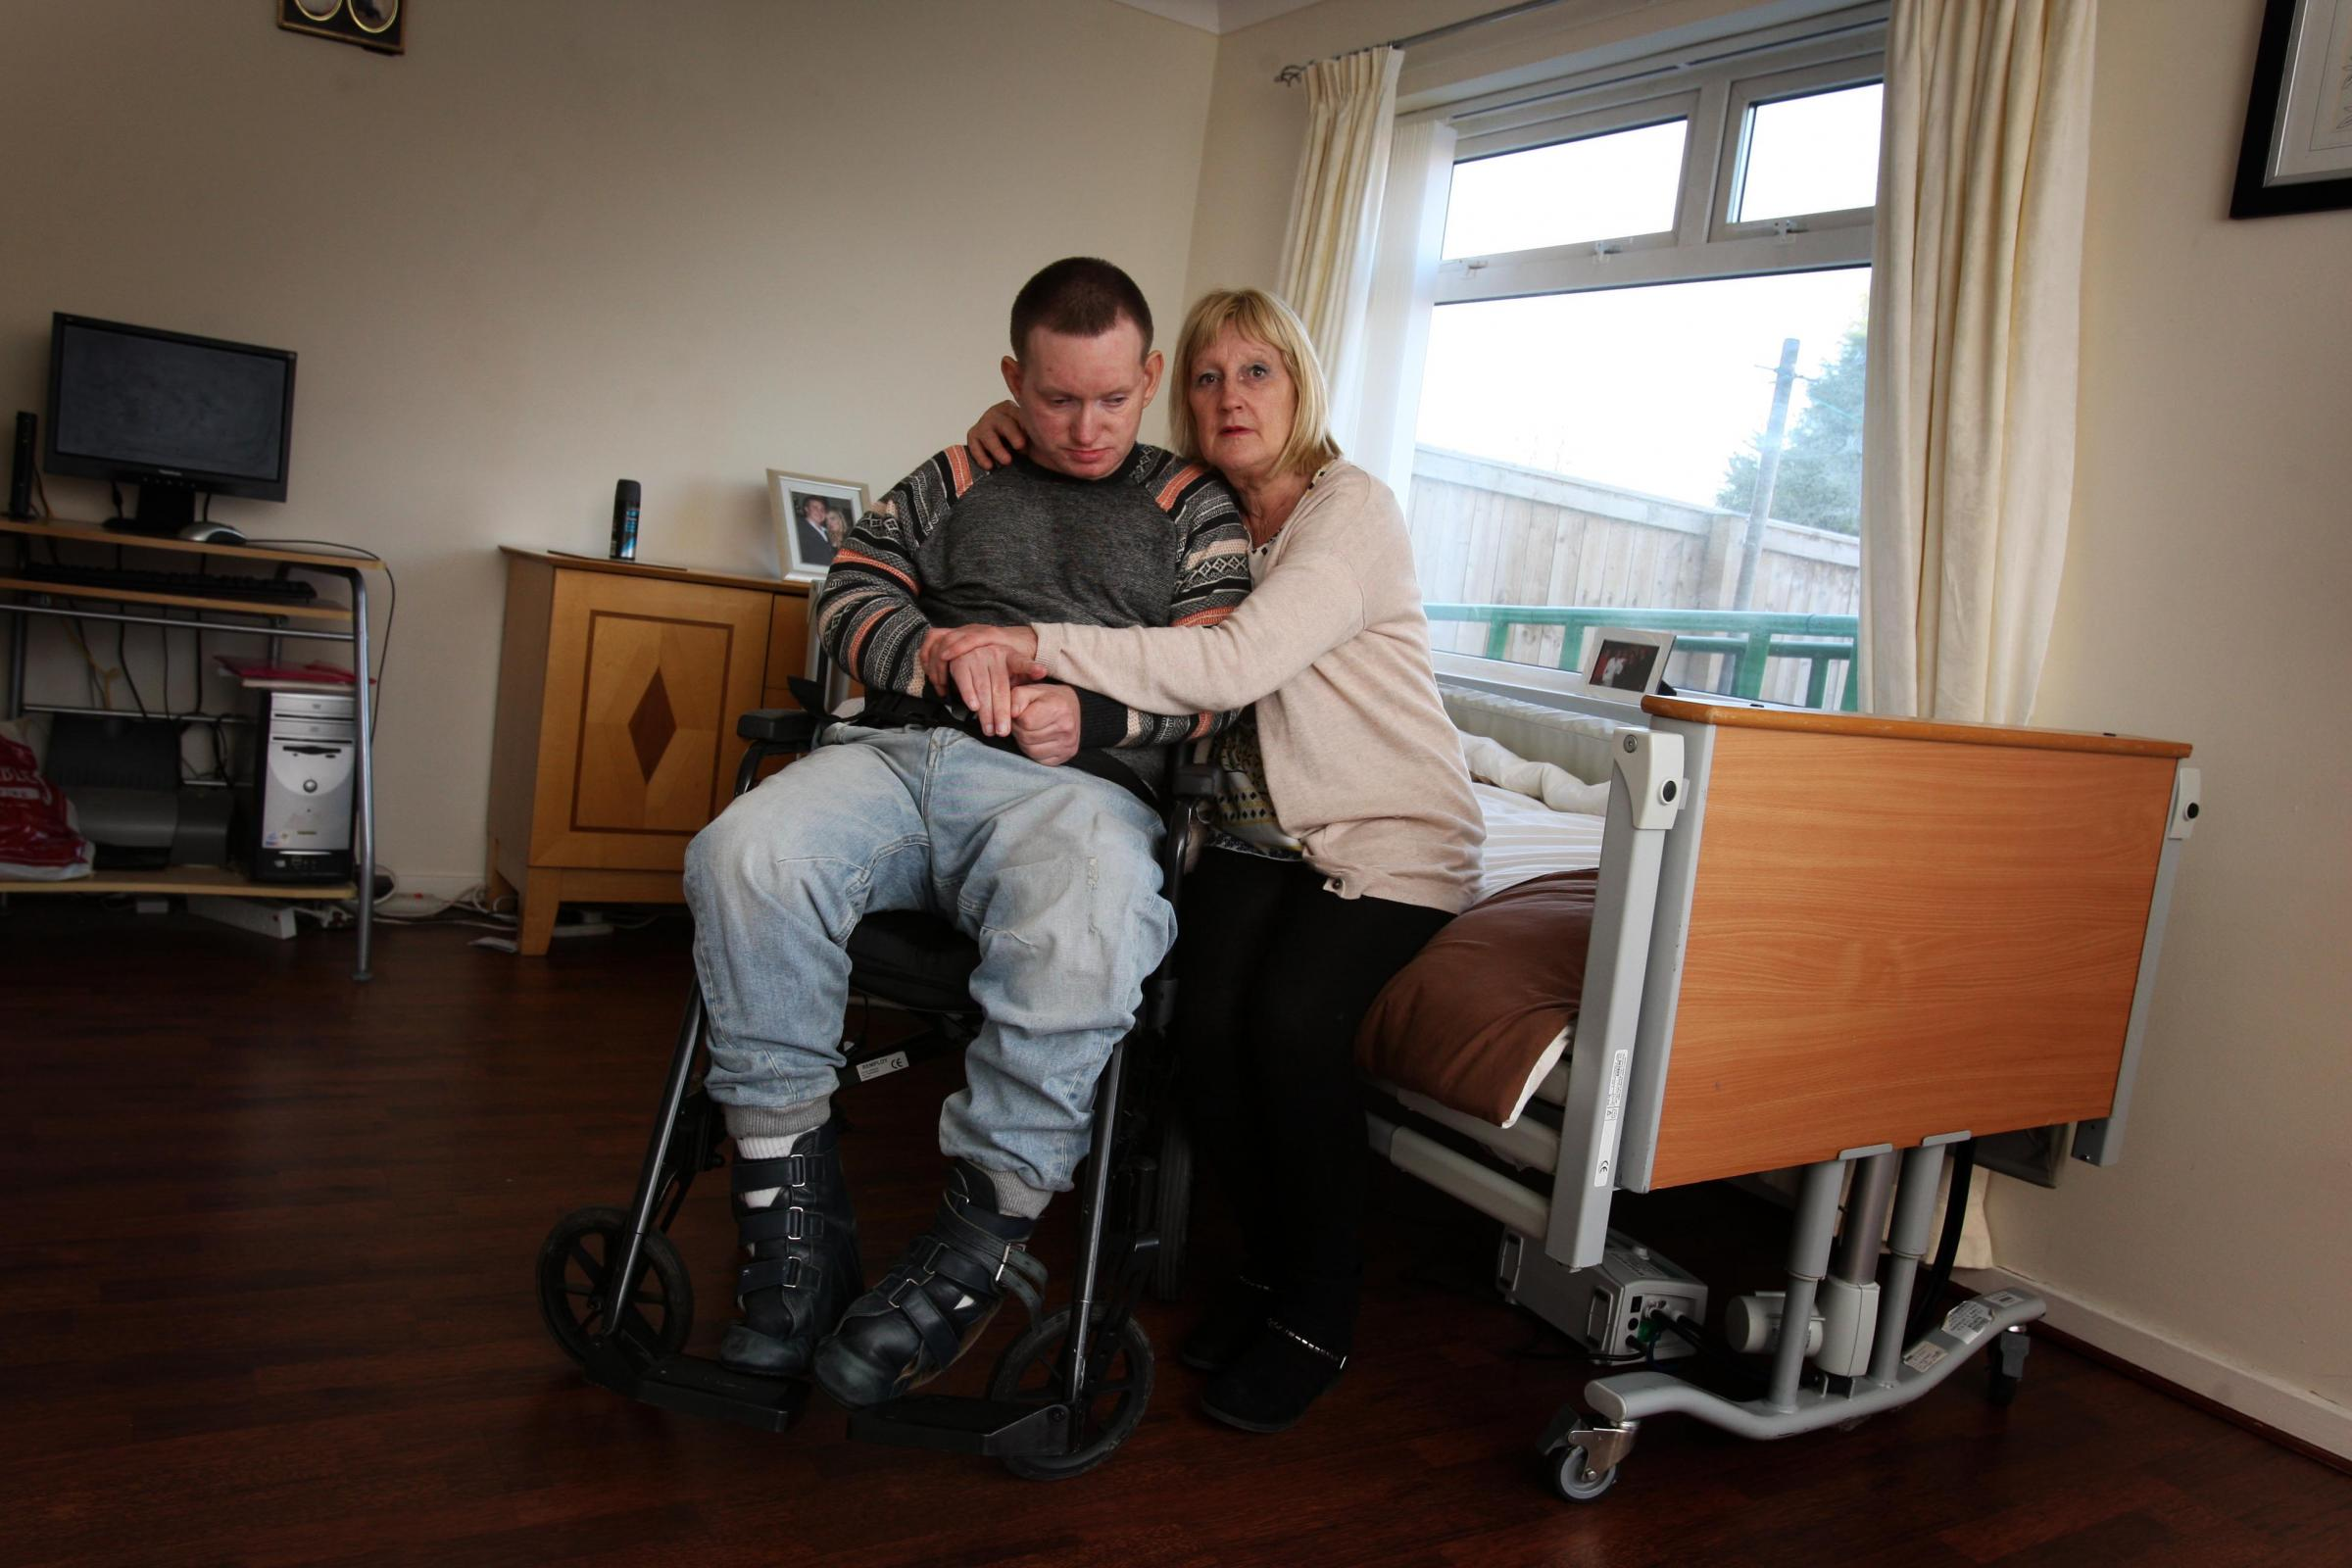 Marilyn Barker who looks after Peter Barker, her 35-year-old, severely disabled, incontinent son, has been ordered to have a stairlift removed from their home meaning she has to take him 1.5miles away just to get a shower. Picture